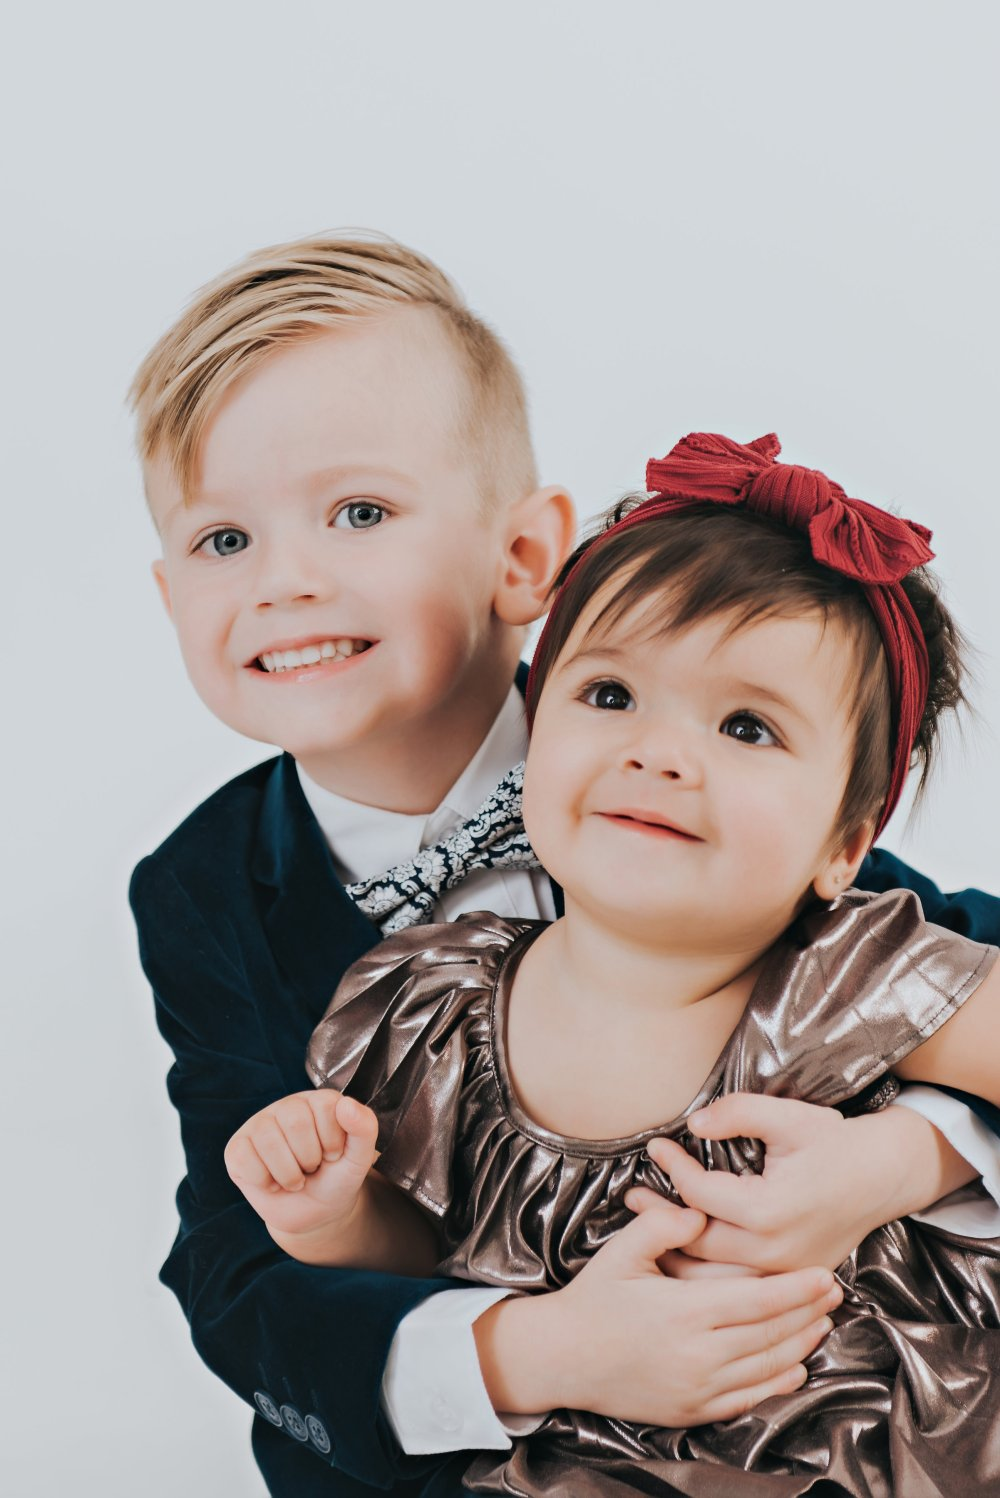 All the heart eyes for these two! This family photo session had to include a sibling photo as well! Tatum's pleated dress is too cute! #familyphotos #girlfashion #boysfashion #siblingphoto #specialoccasion